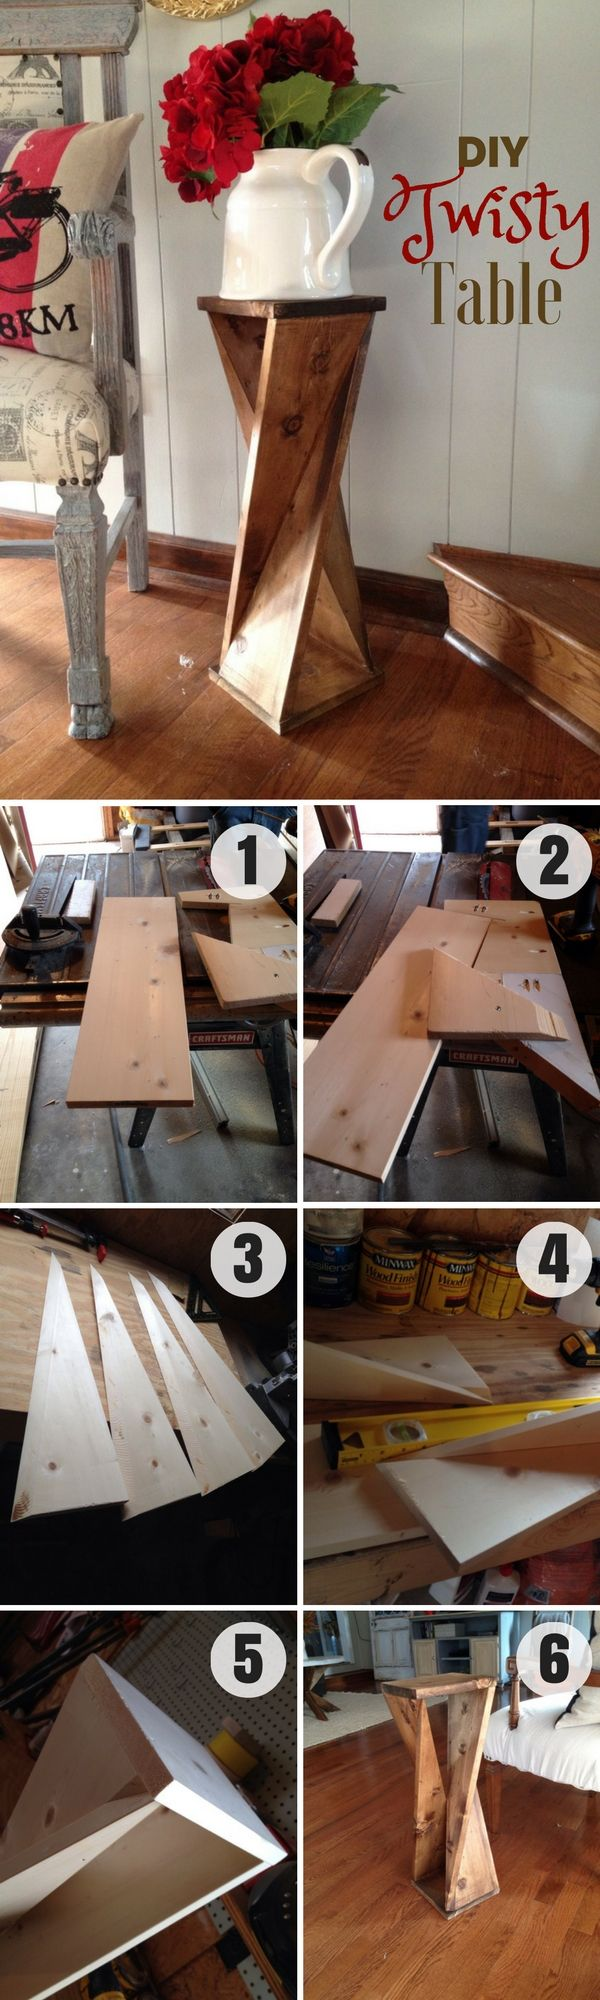 18 Easy Diy Wood Craft Project Ideas On A Budget Diy Woodworking